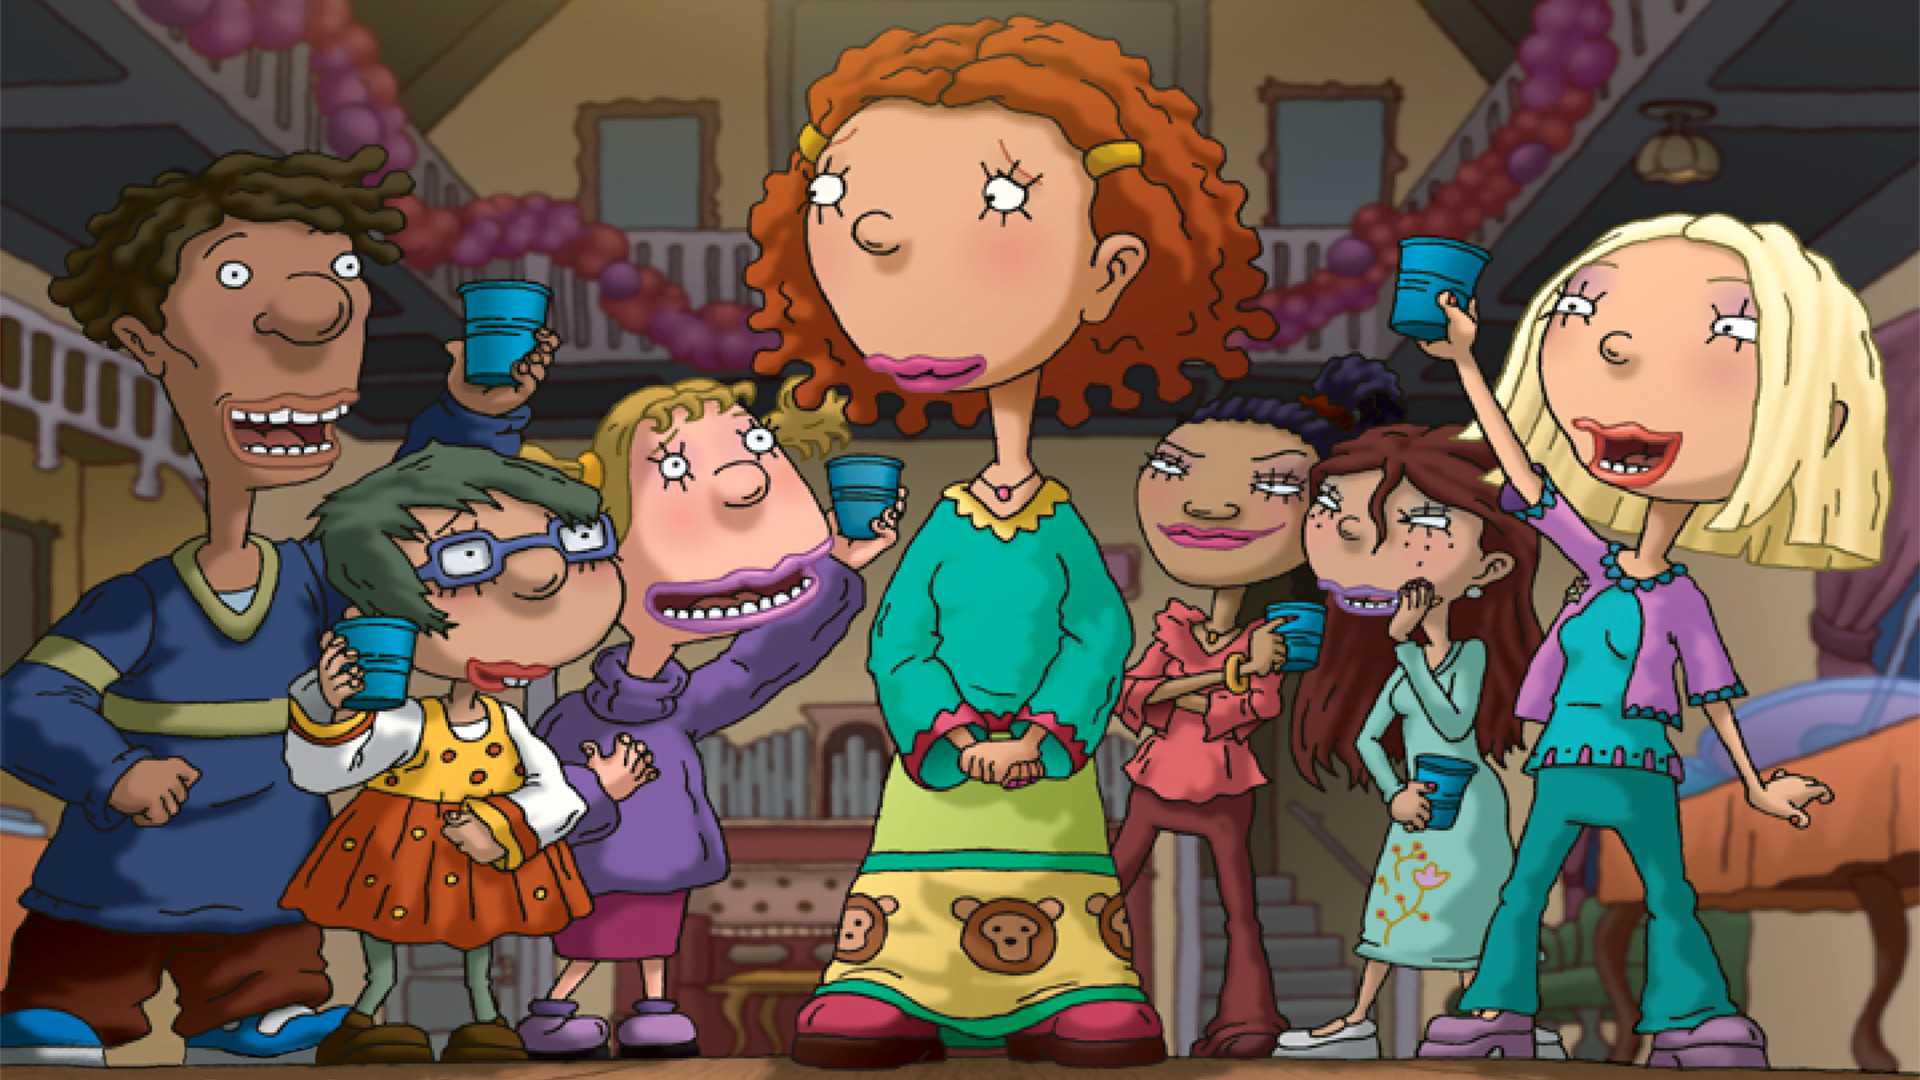 'As Told By Ginger' Is Coming Back: Nickelodeon Announces 2017 Reboot